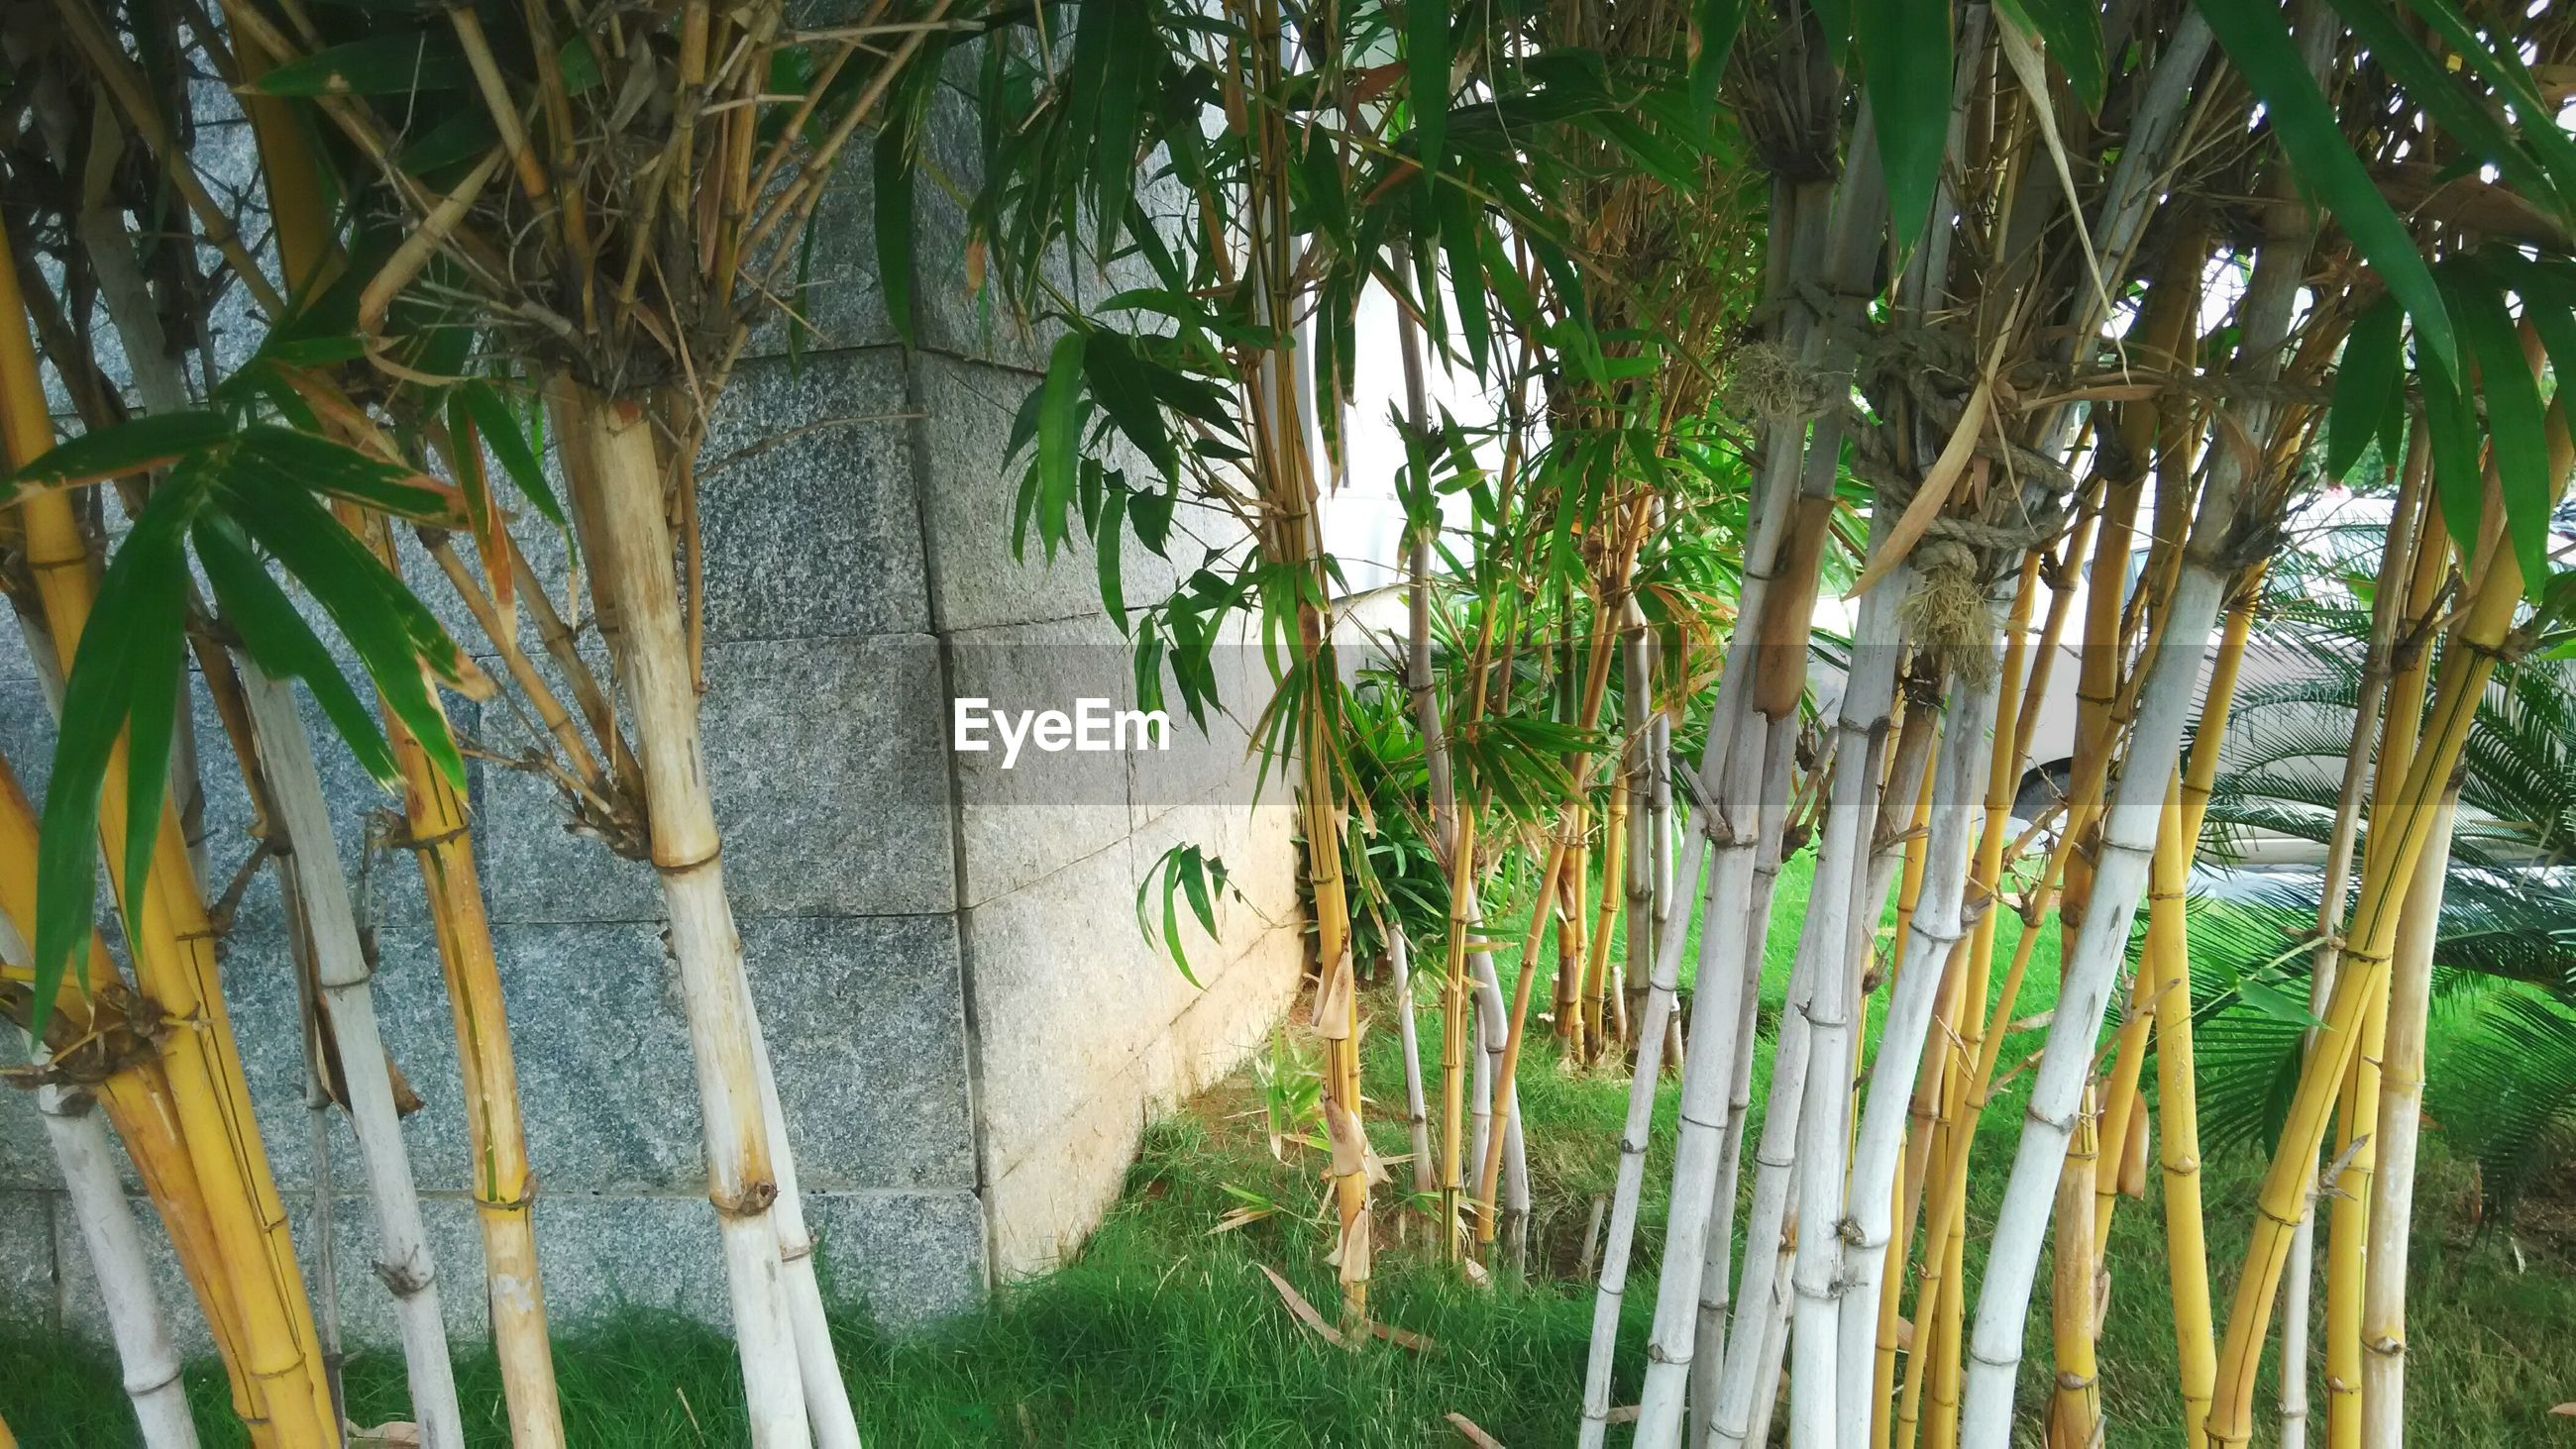 Bamboo trees growing on field